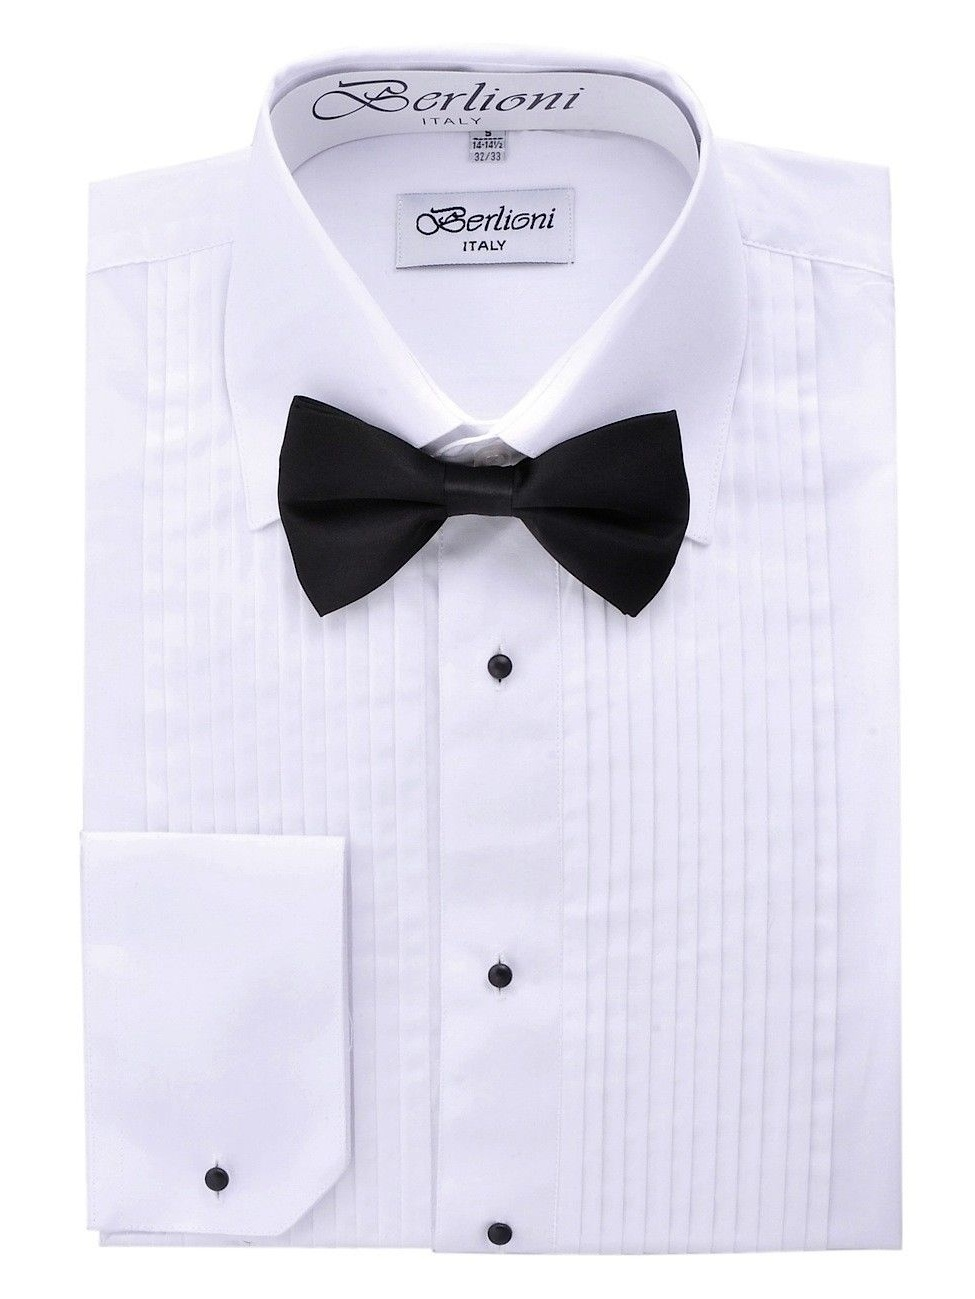 Berlioni Men's Long Sleeve Tuxedo Laydown Collar W/ Bow-tie Dress Shirt White